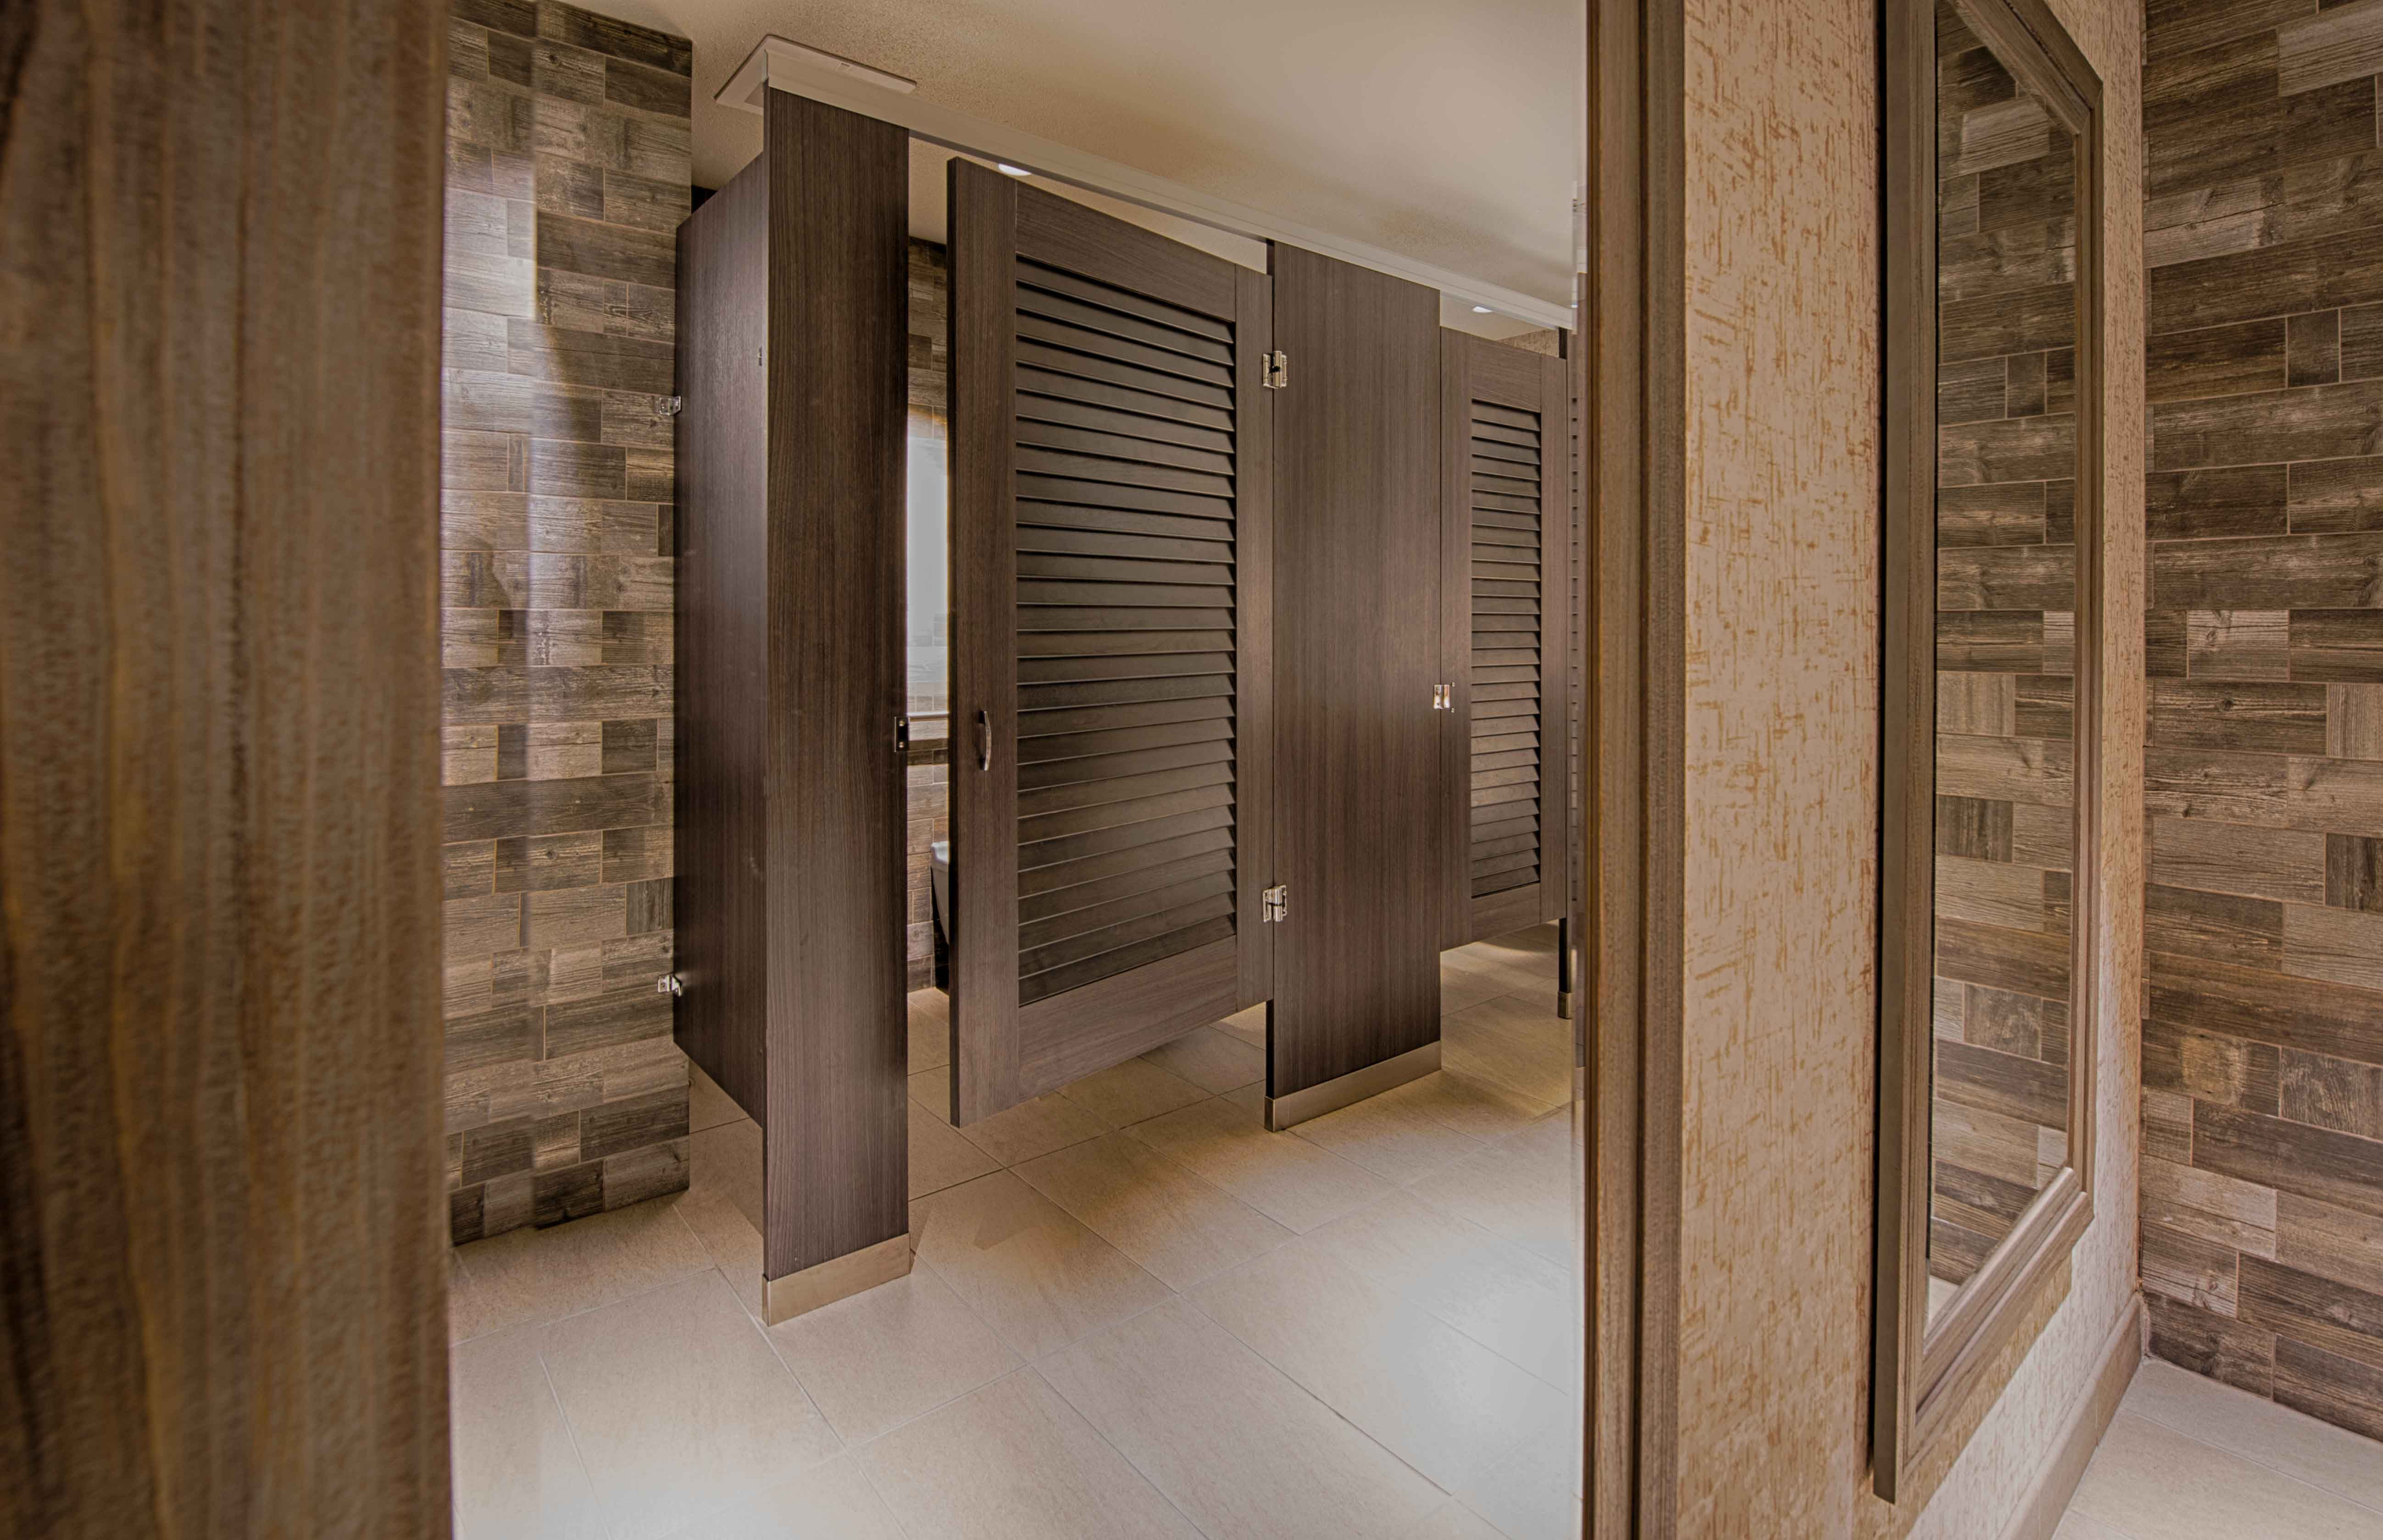 frosted for glass intended complete concept door ideas bathroom doors example vs special warm extraordinary decor